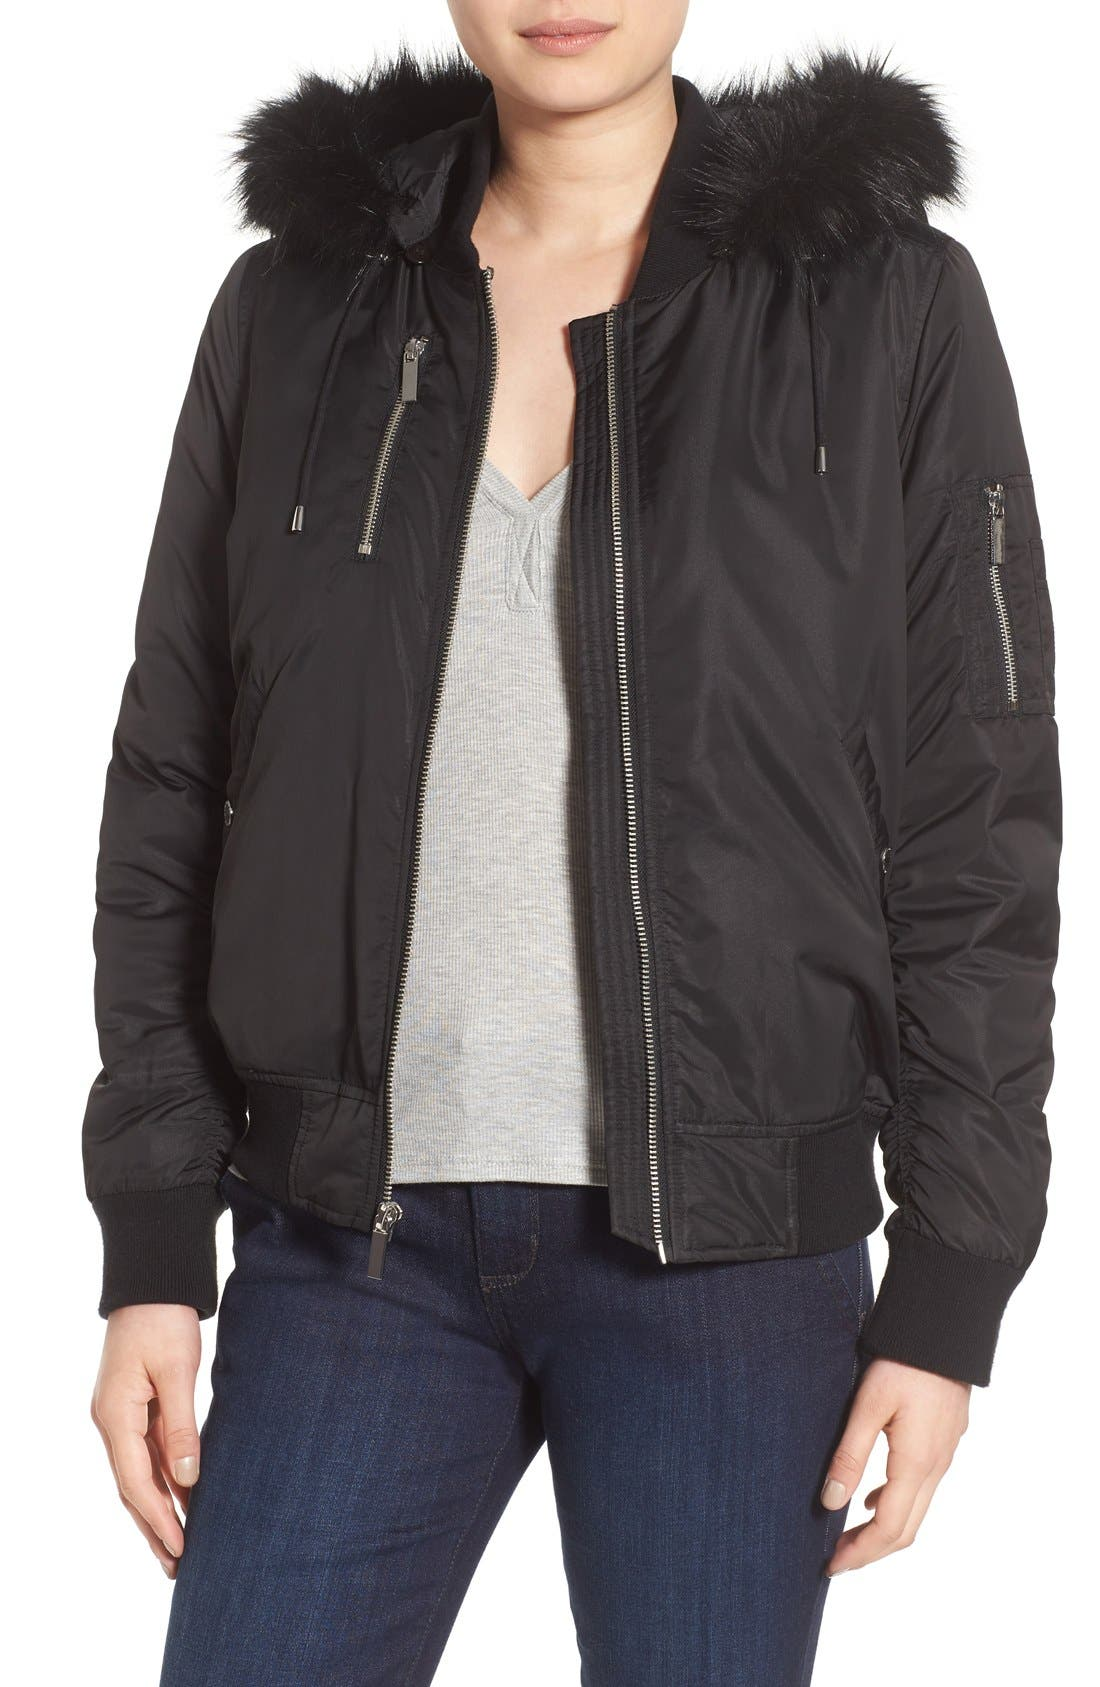 Women's French Connection Bomber Jackets | Nordstrom